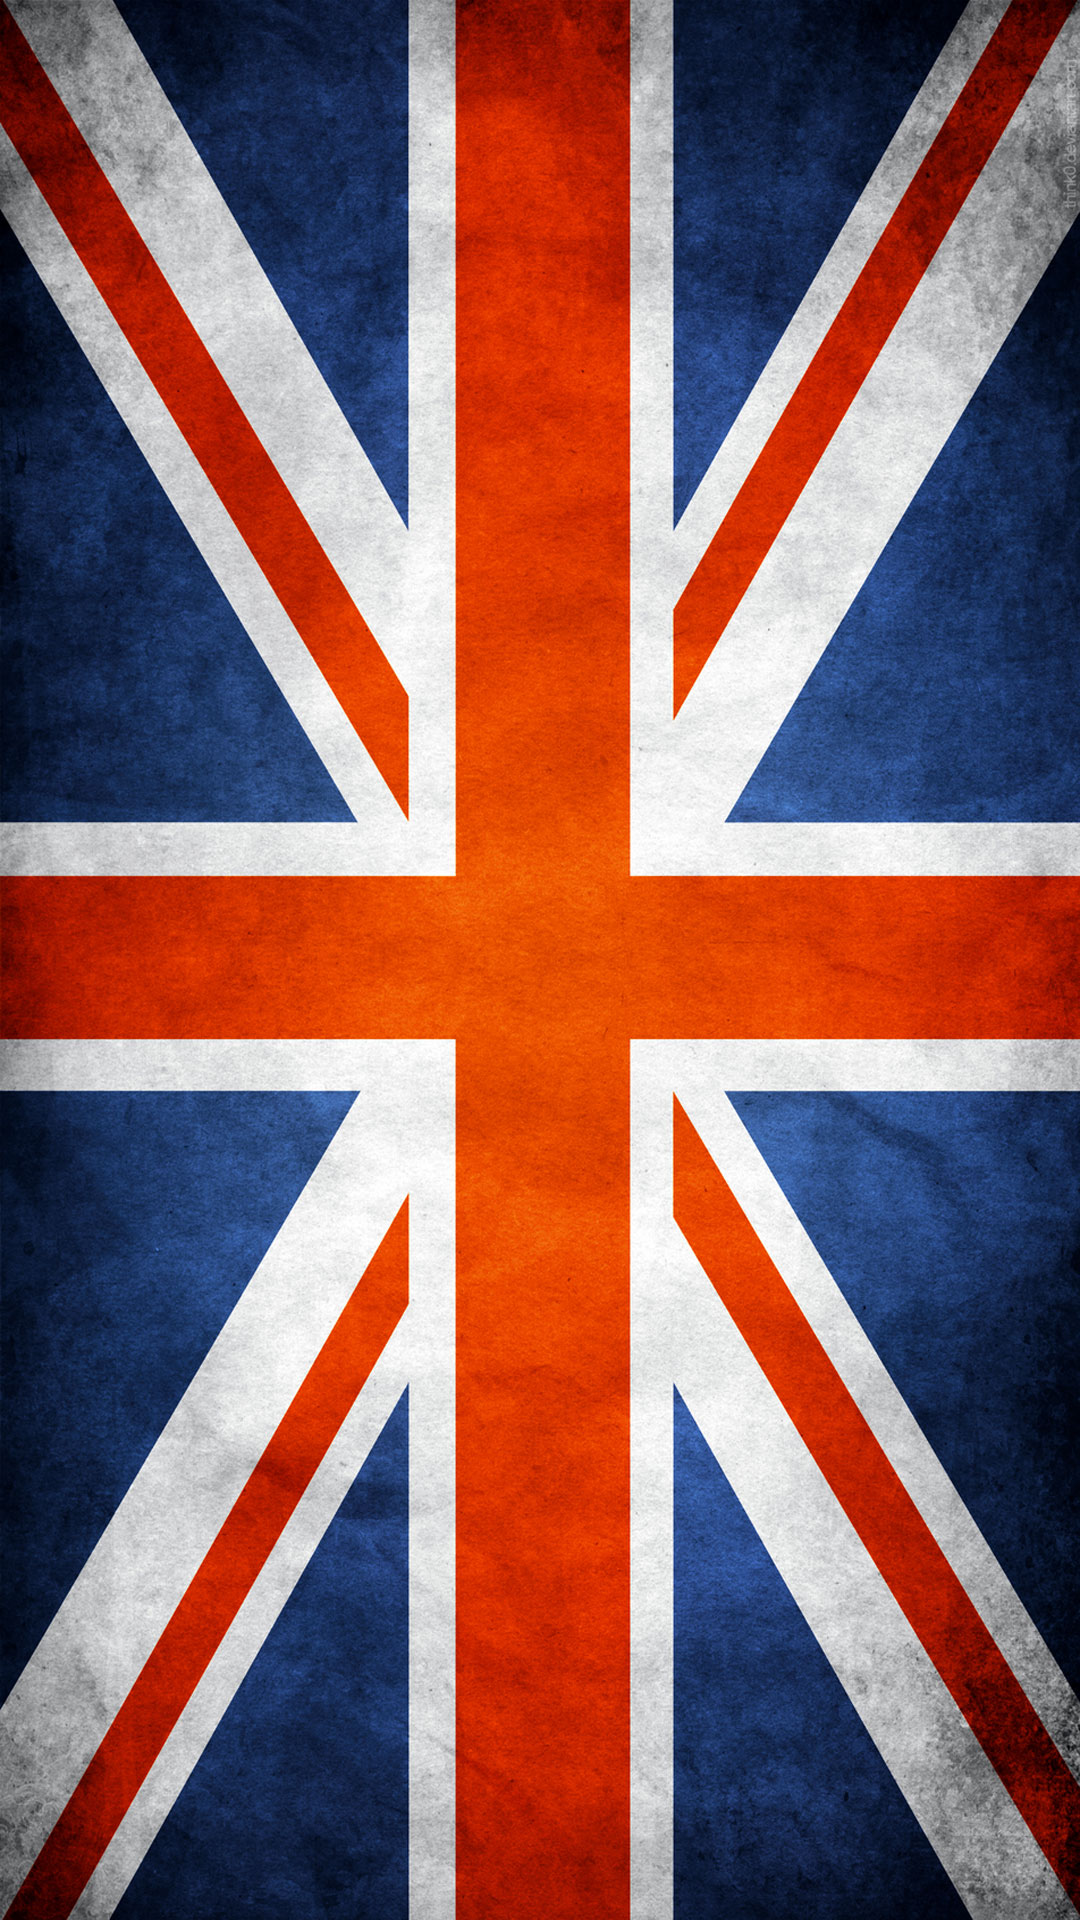 UK Flag iPhone 6 Plus wallpaper 25 Best Cool iPhone 6 Plus Wallpapers 1080x1920